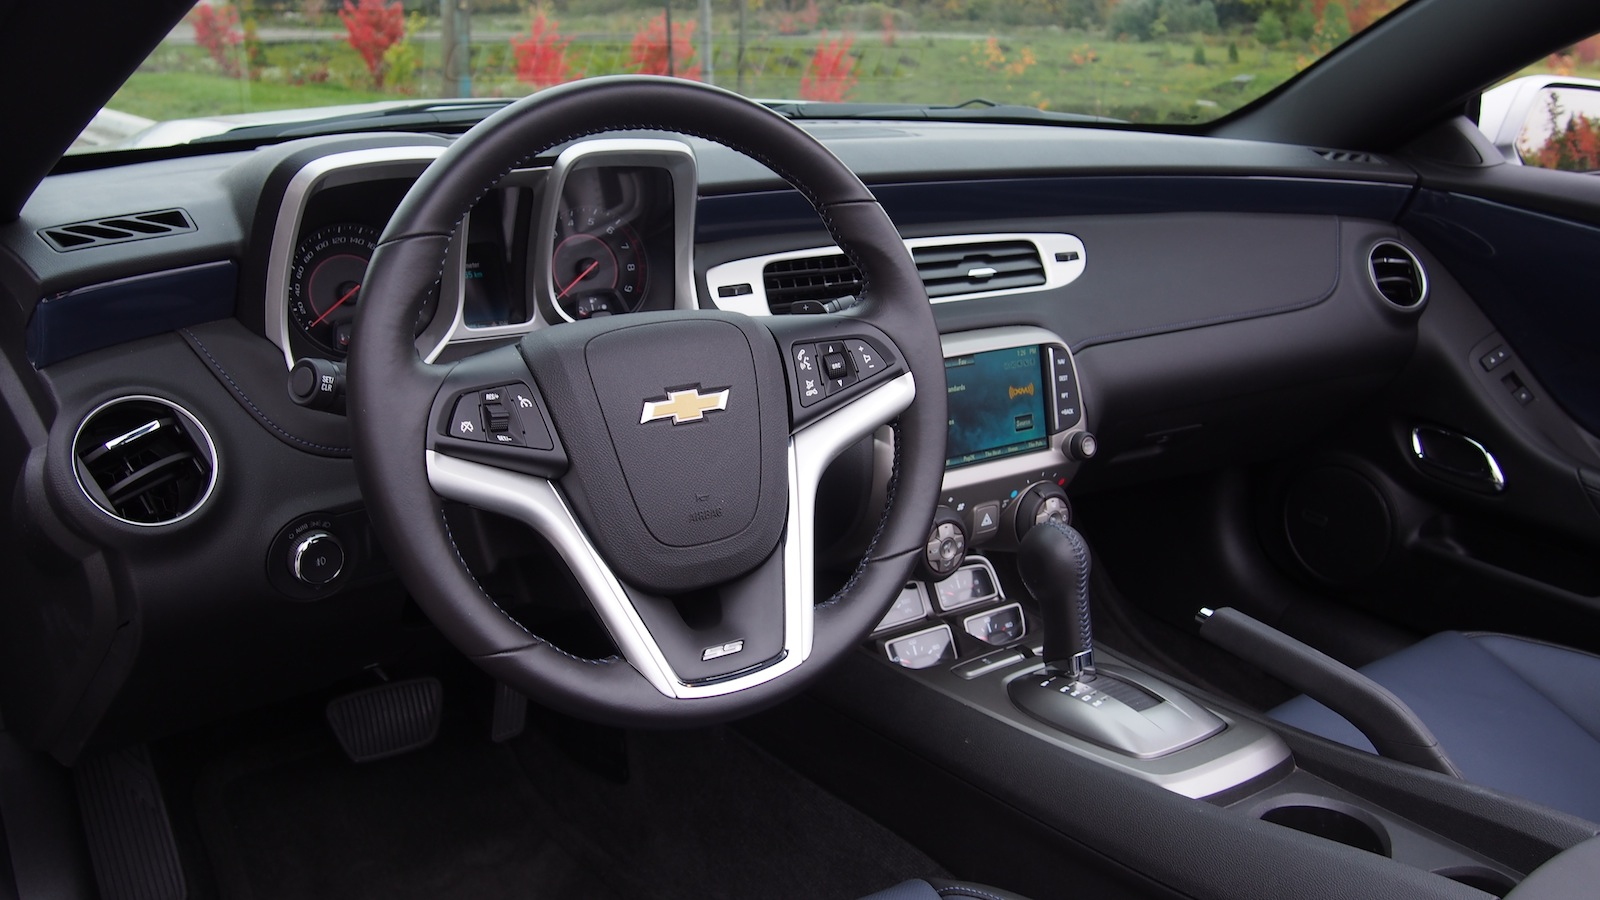 Marvelous 2015 Chevrolet Camaro SS Convertible Dashboard Interior Photo